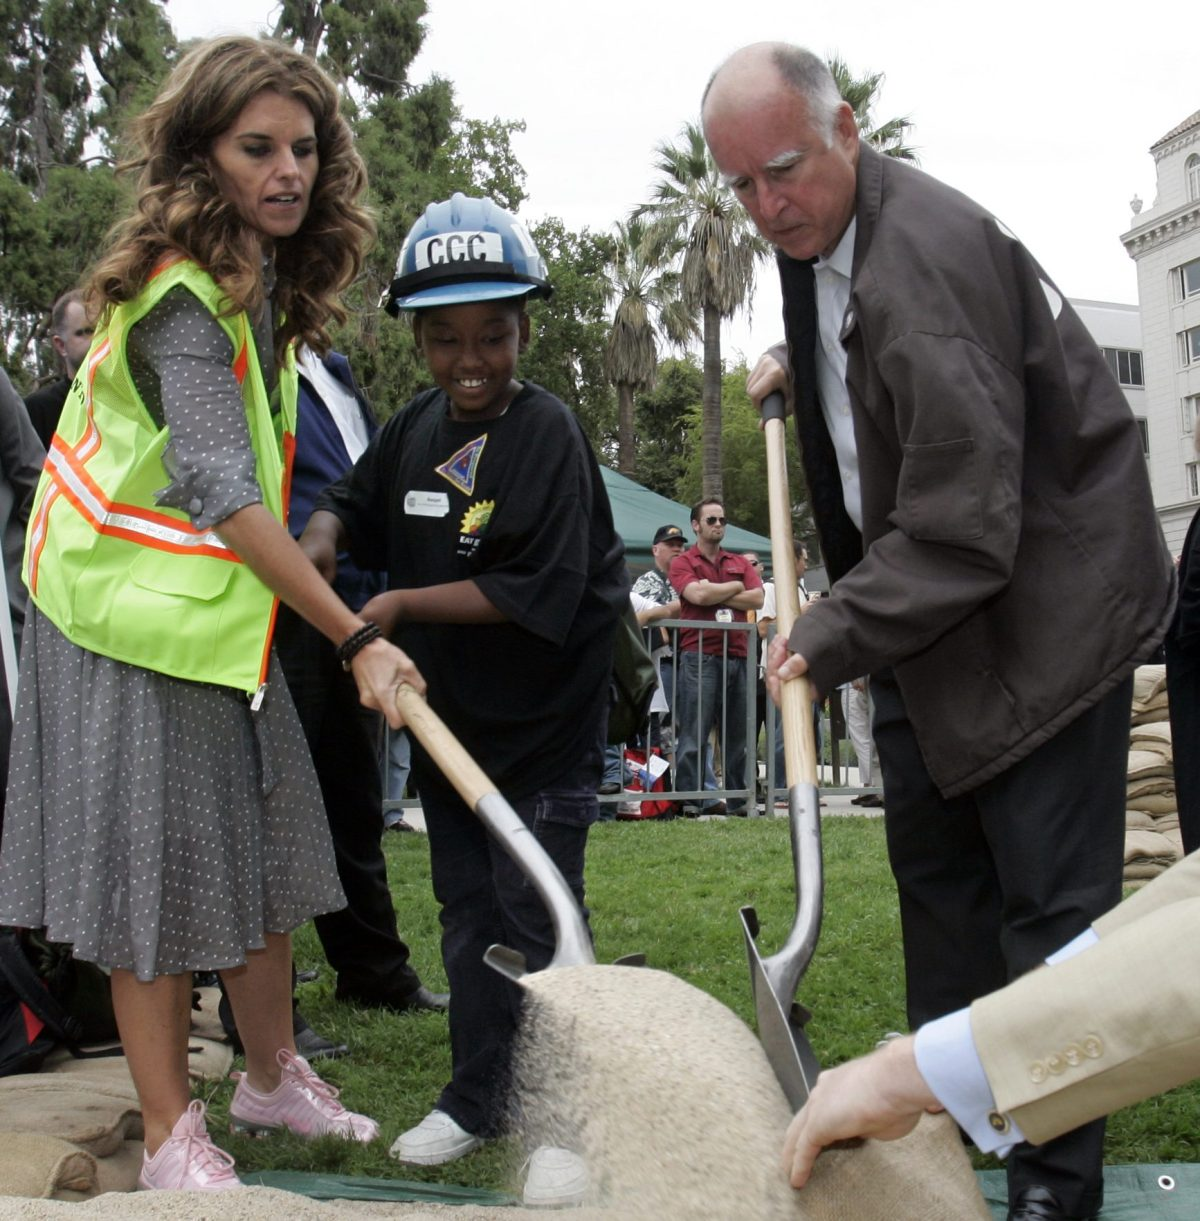 California first lady Maria Shriver, left, helps Auviyonti Jefferson, 9, center, and Oakland Mayor Jerry Brown, fill a sandbag during a visit to a California Conservation Corps exhibit in 2006. Photo by Rich Pedroncelli, Associated Press